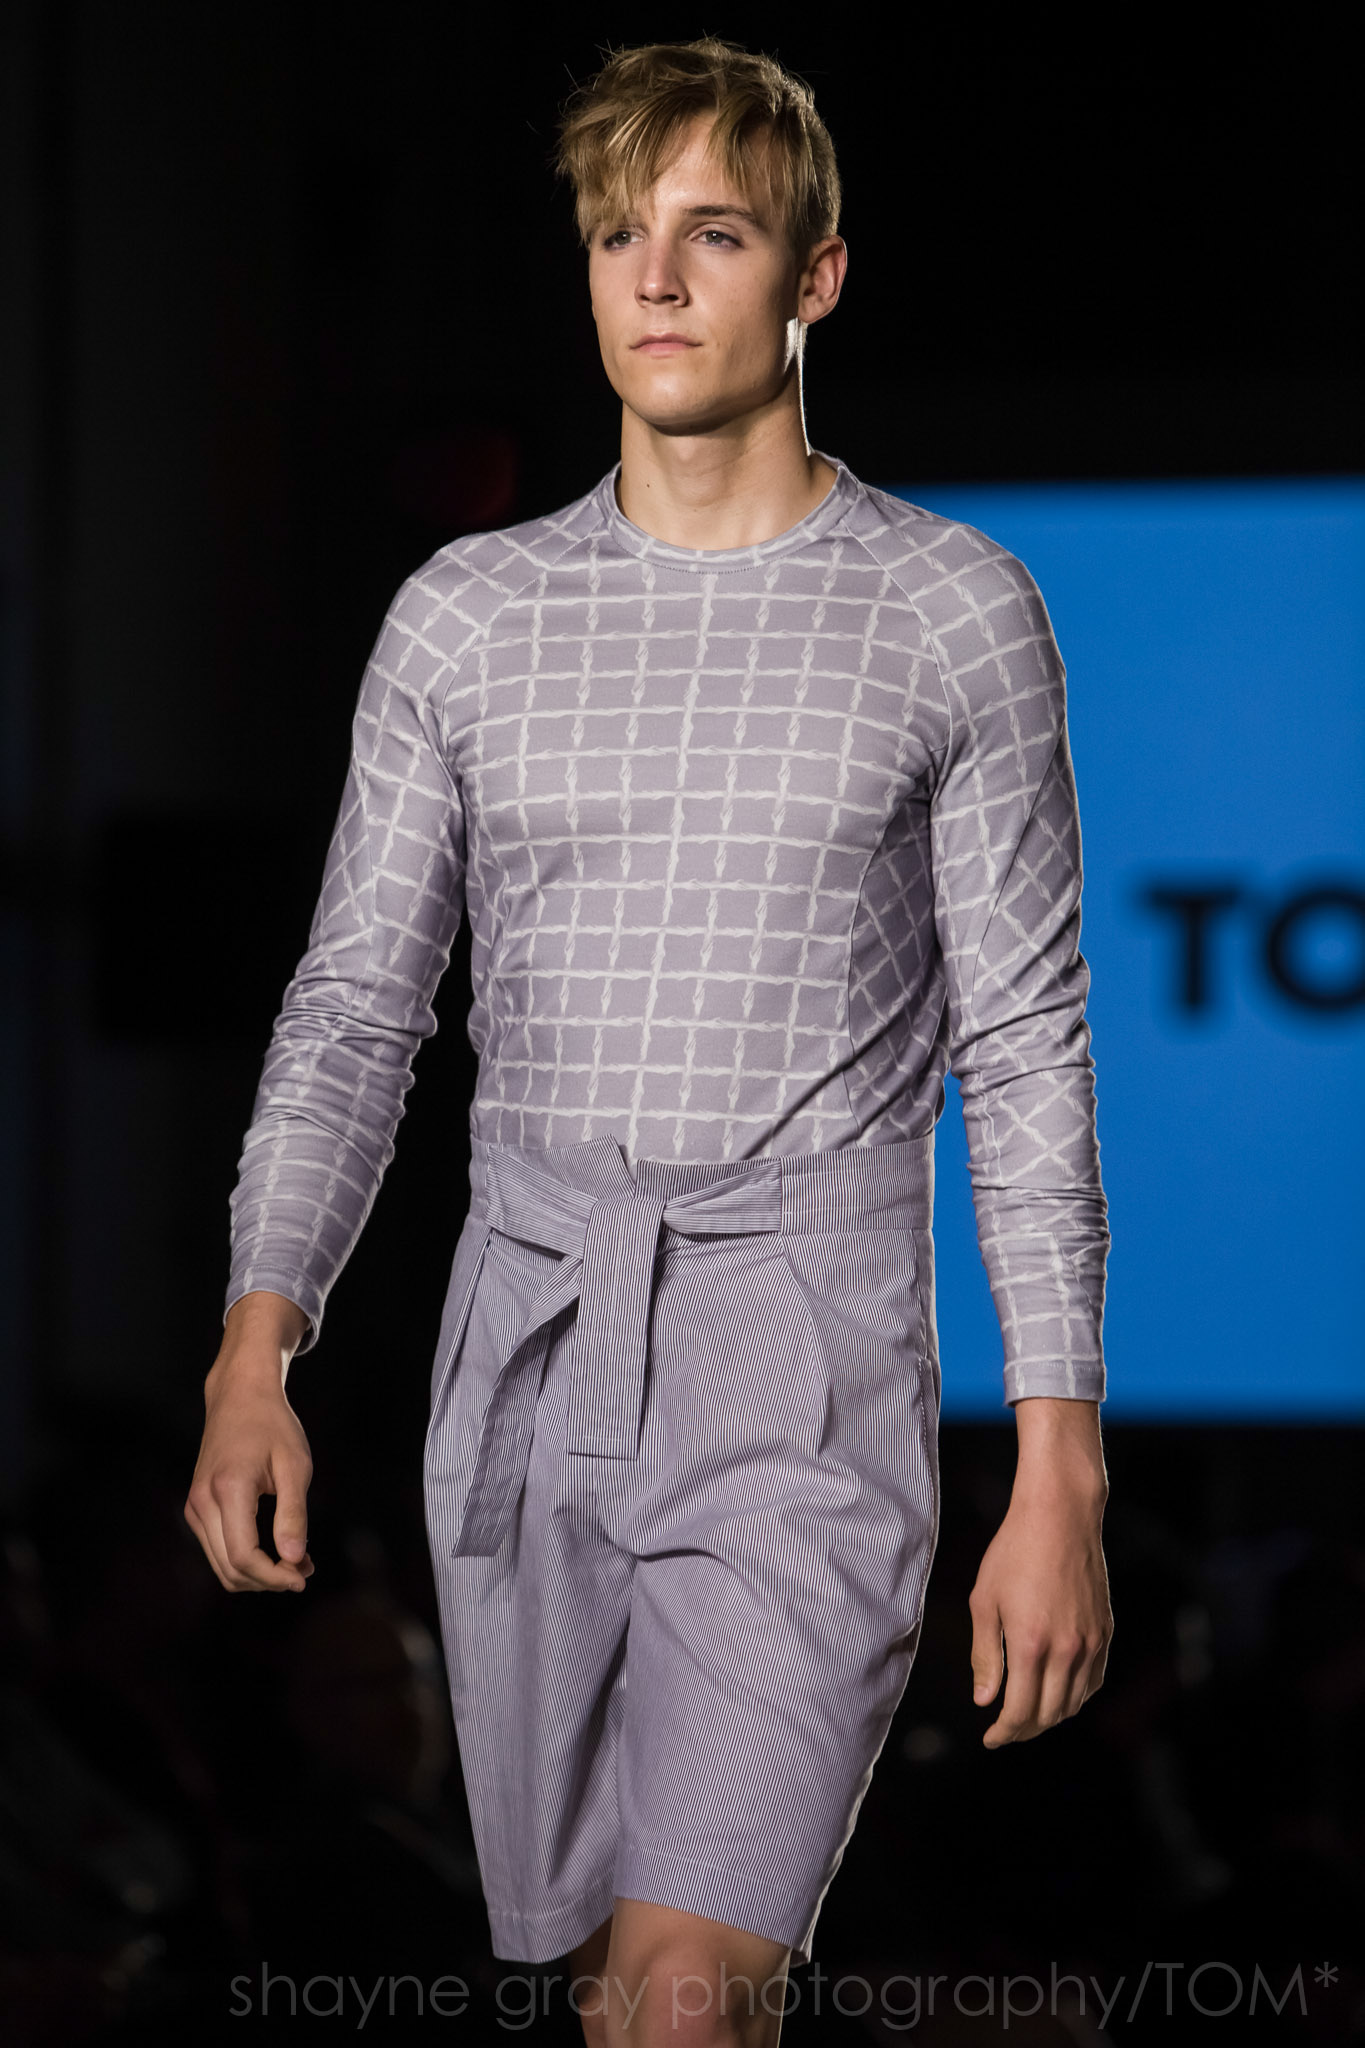 Shayne-Gray-Toronto-men's-fashion_week-TOM-christian-l'enfant-roi-6610.jpg